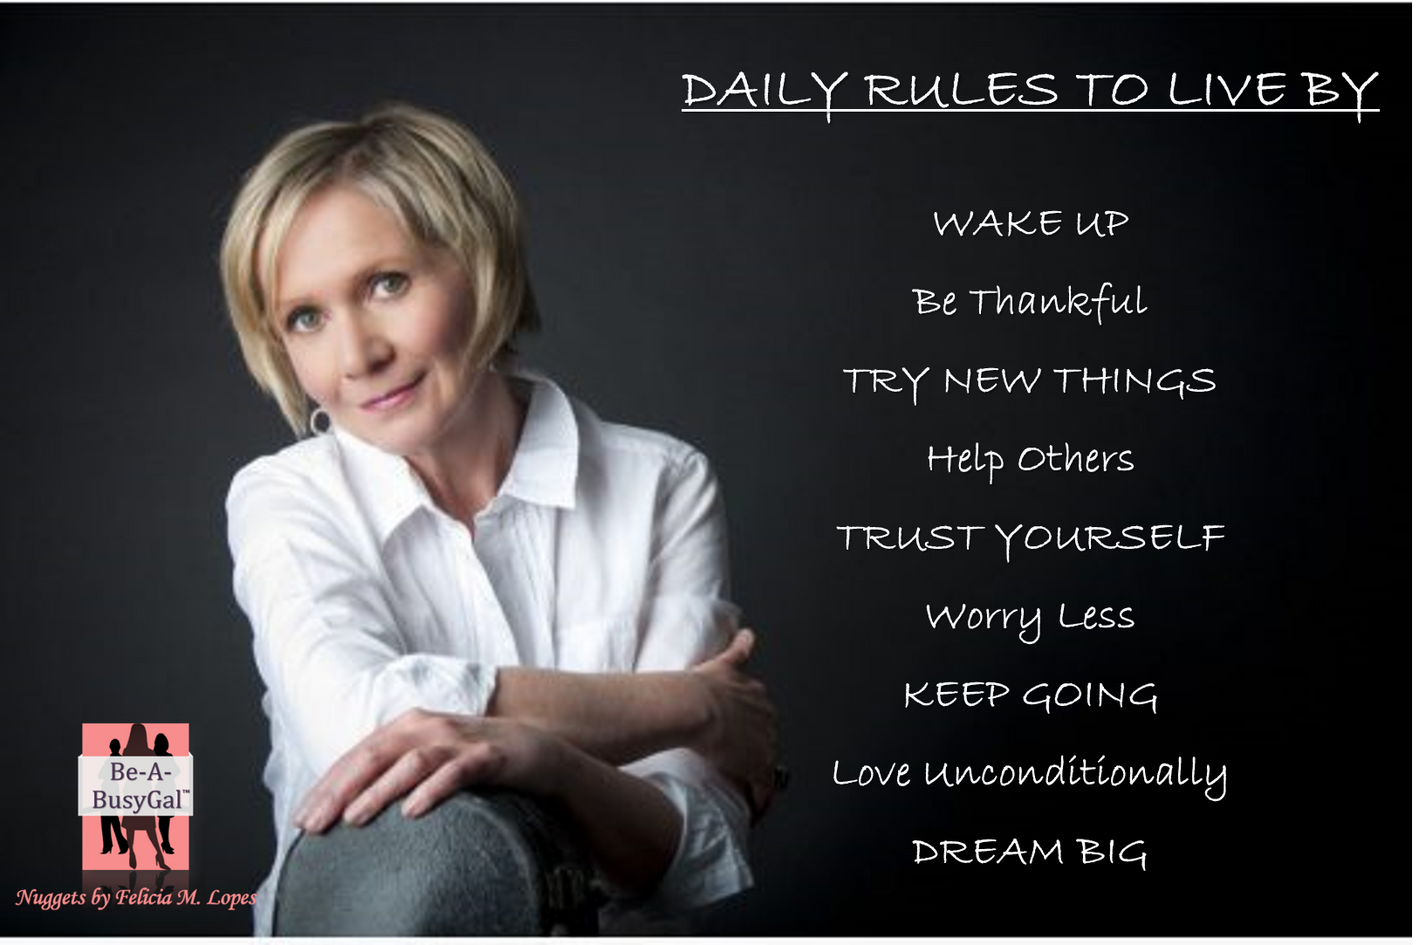 Daily Rules to Live By.png